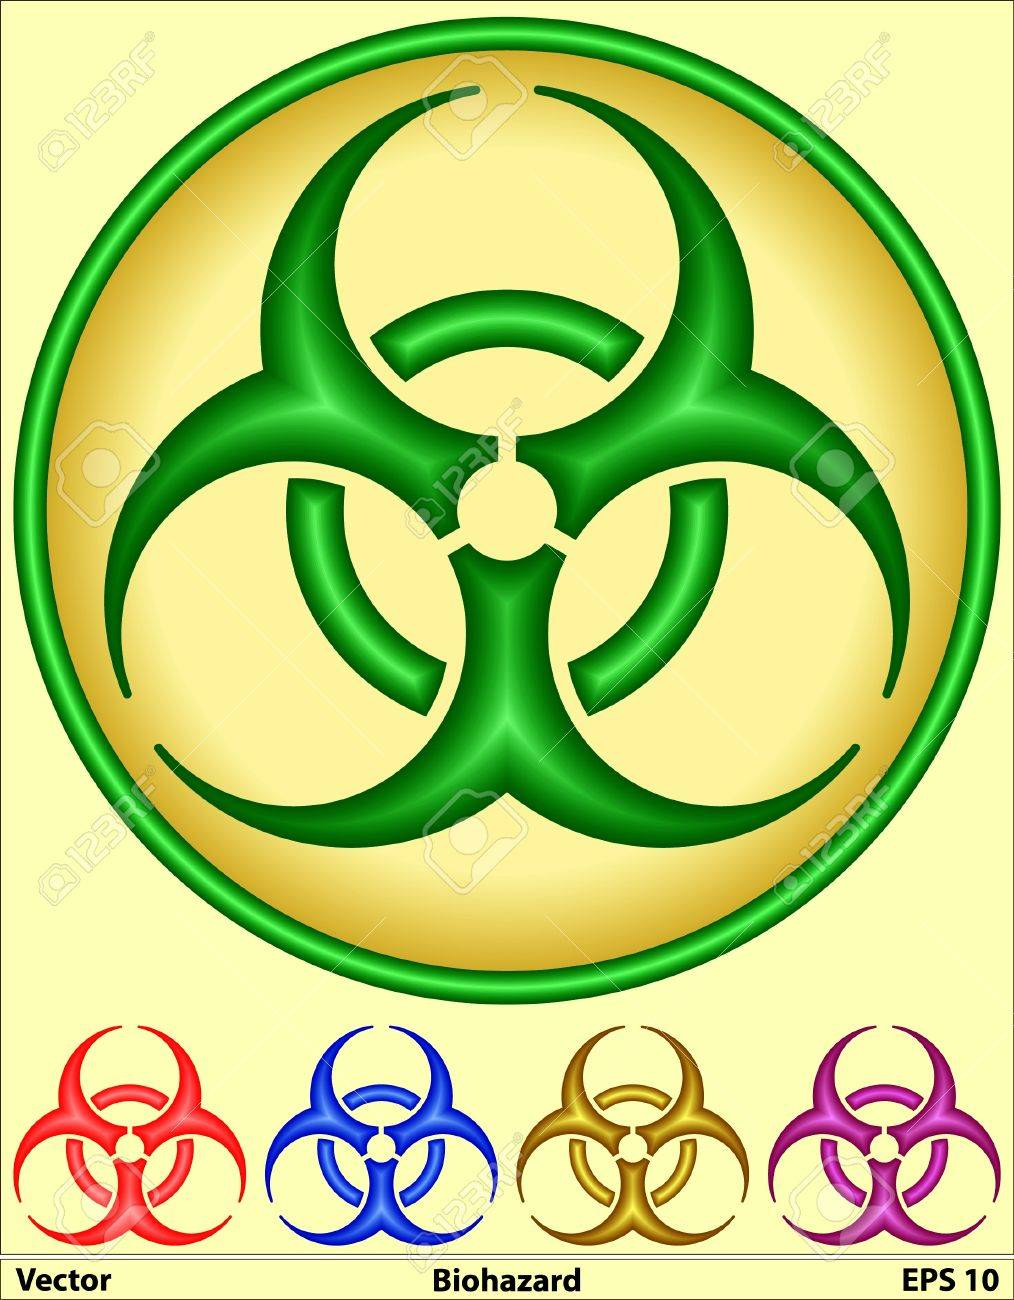 Medical Symbol - Bio hazard Stock Photo - 17095622